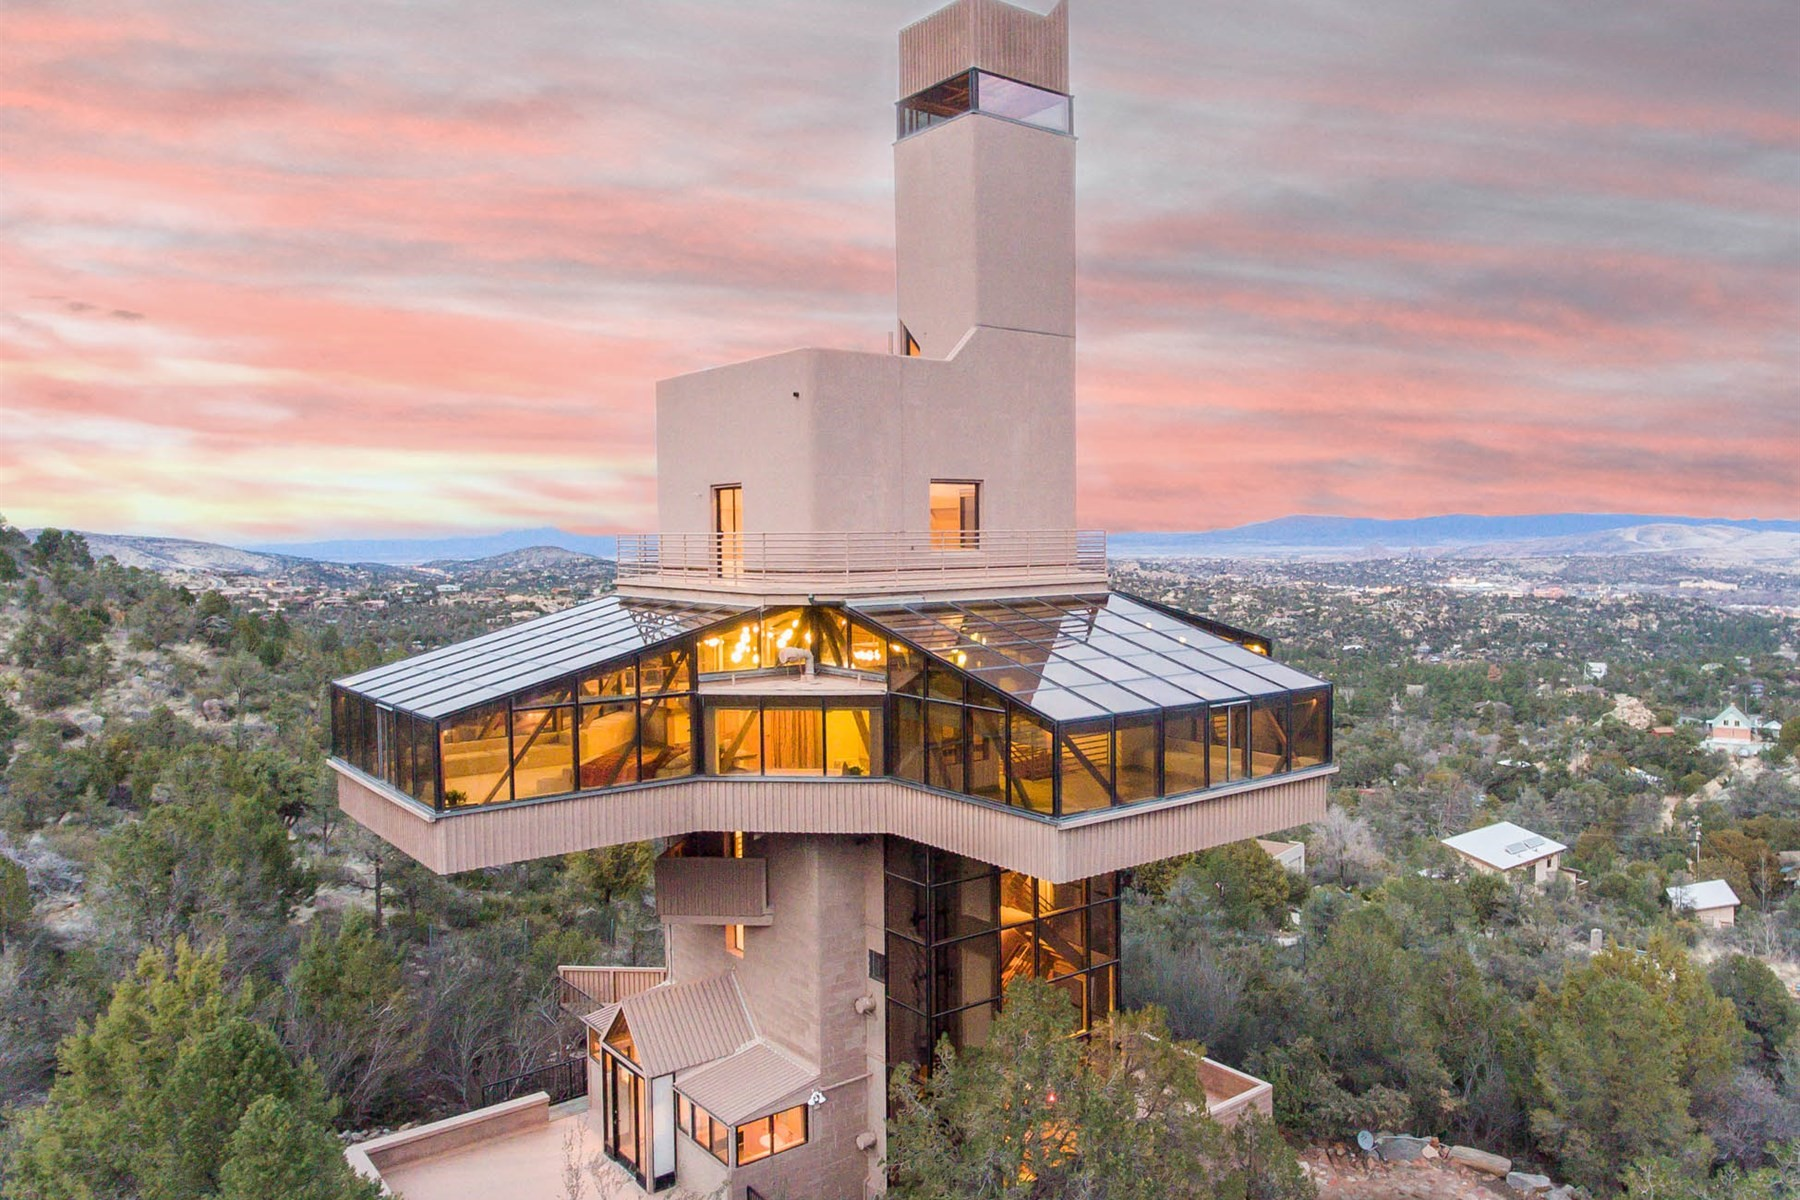 Maison unifamiliale pour l Vente à Falcon Nest is the world's tallest single-family house in Prescott 2365 Skyline Dr Prescott, Arizona, 86303 États-Unis